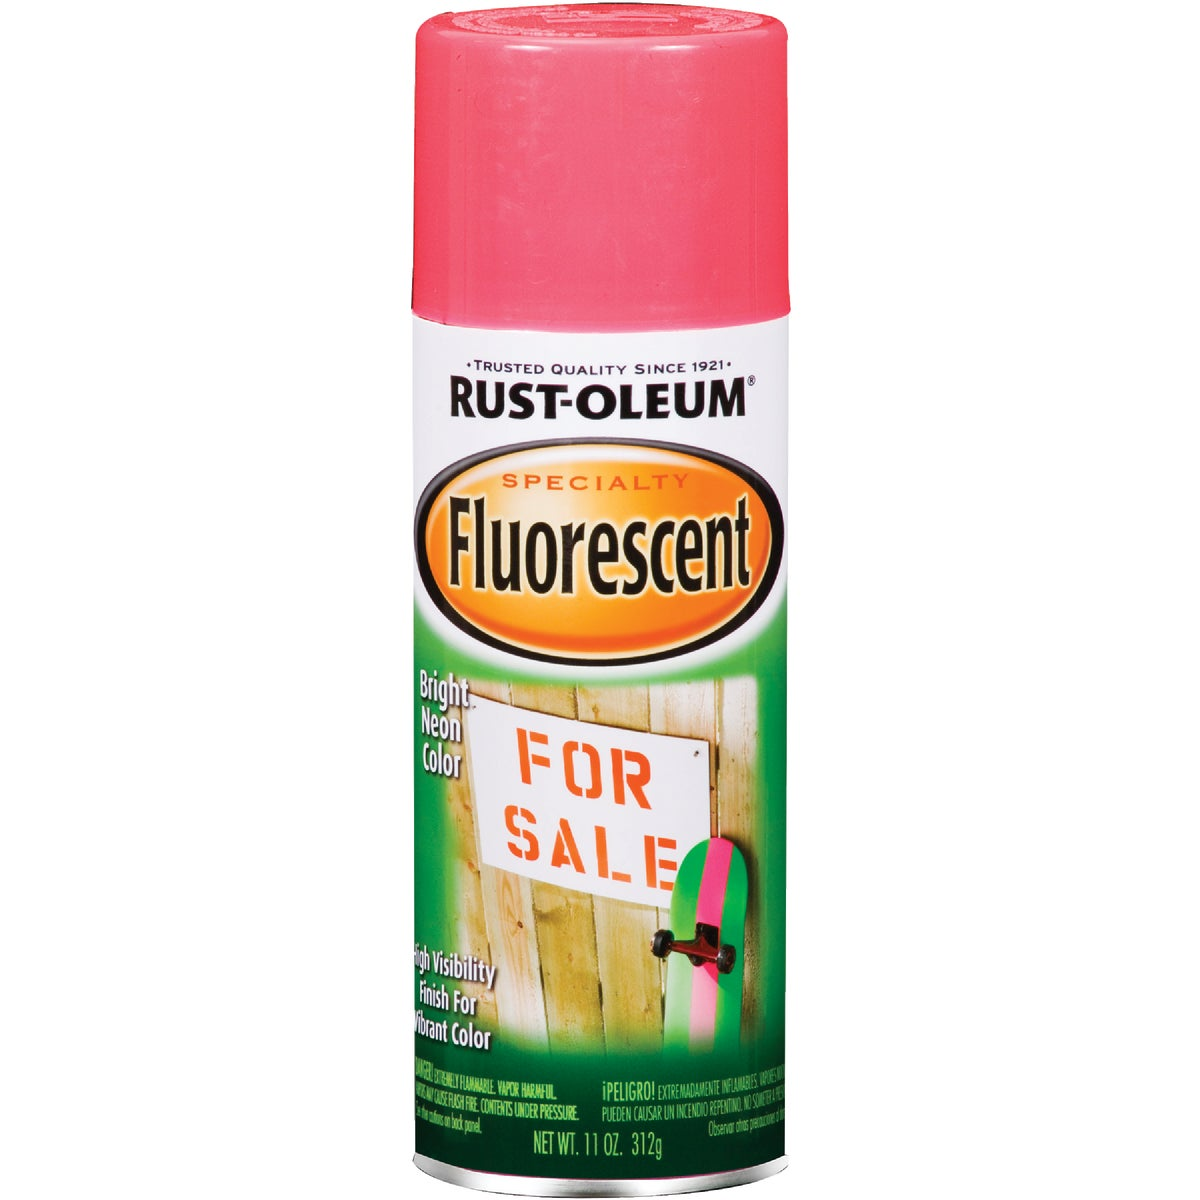 FLRSCNT PINK SPRAY PAINT - 1959-830 by Rustoleum